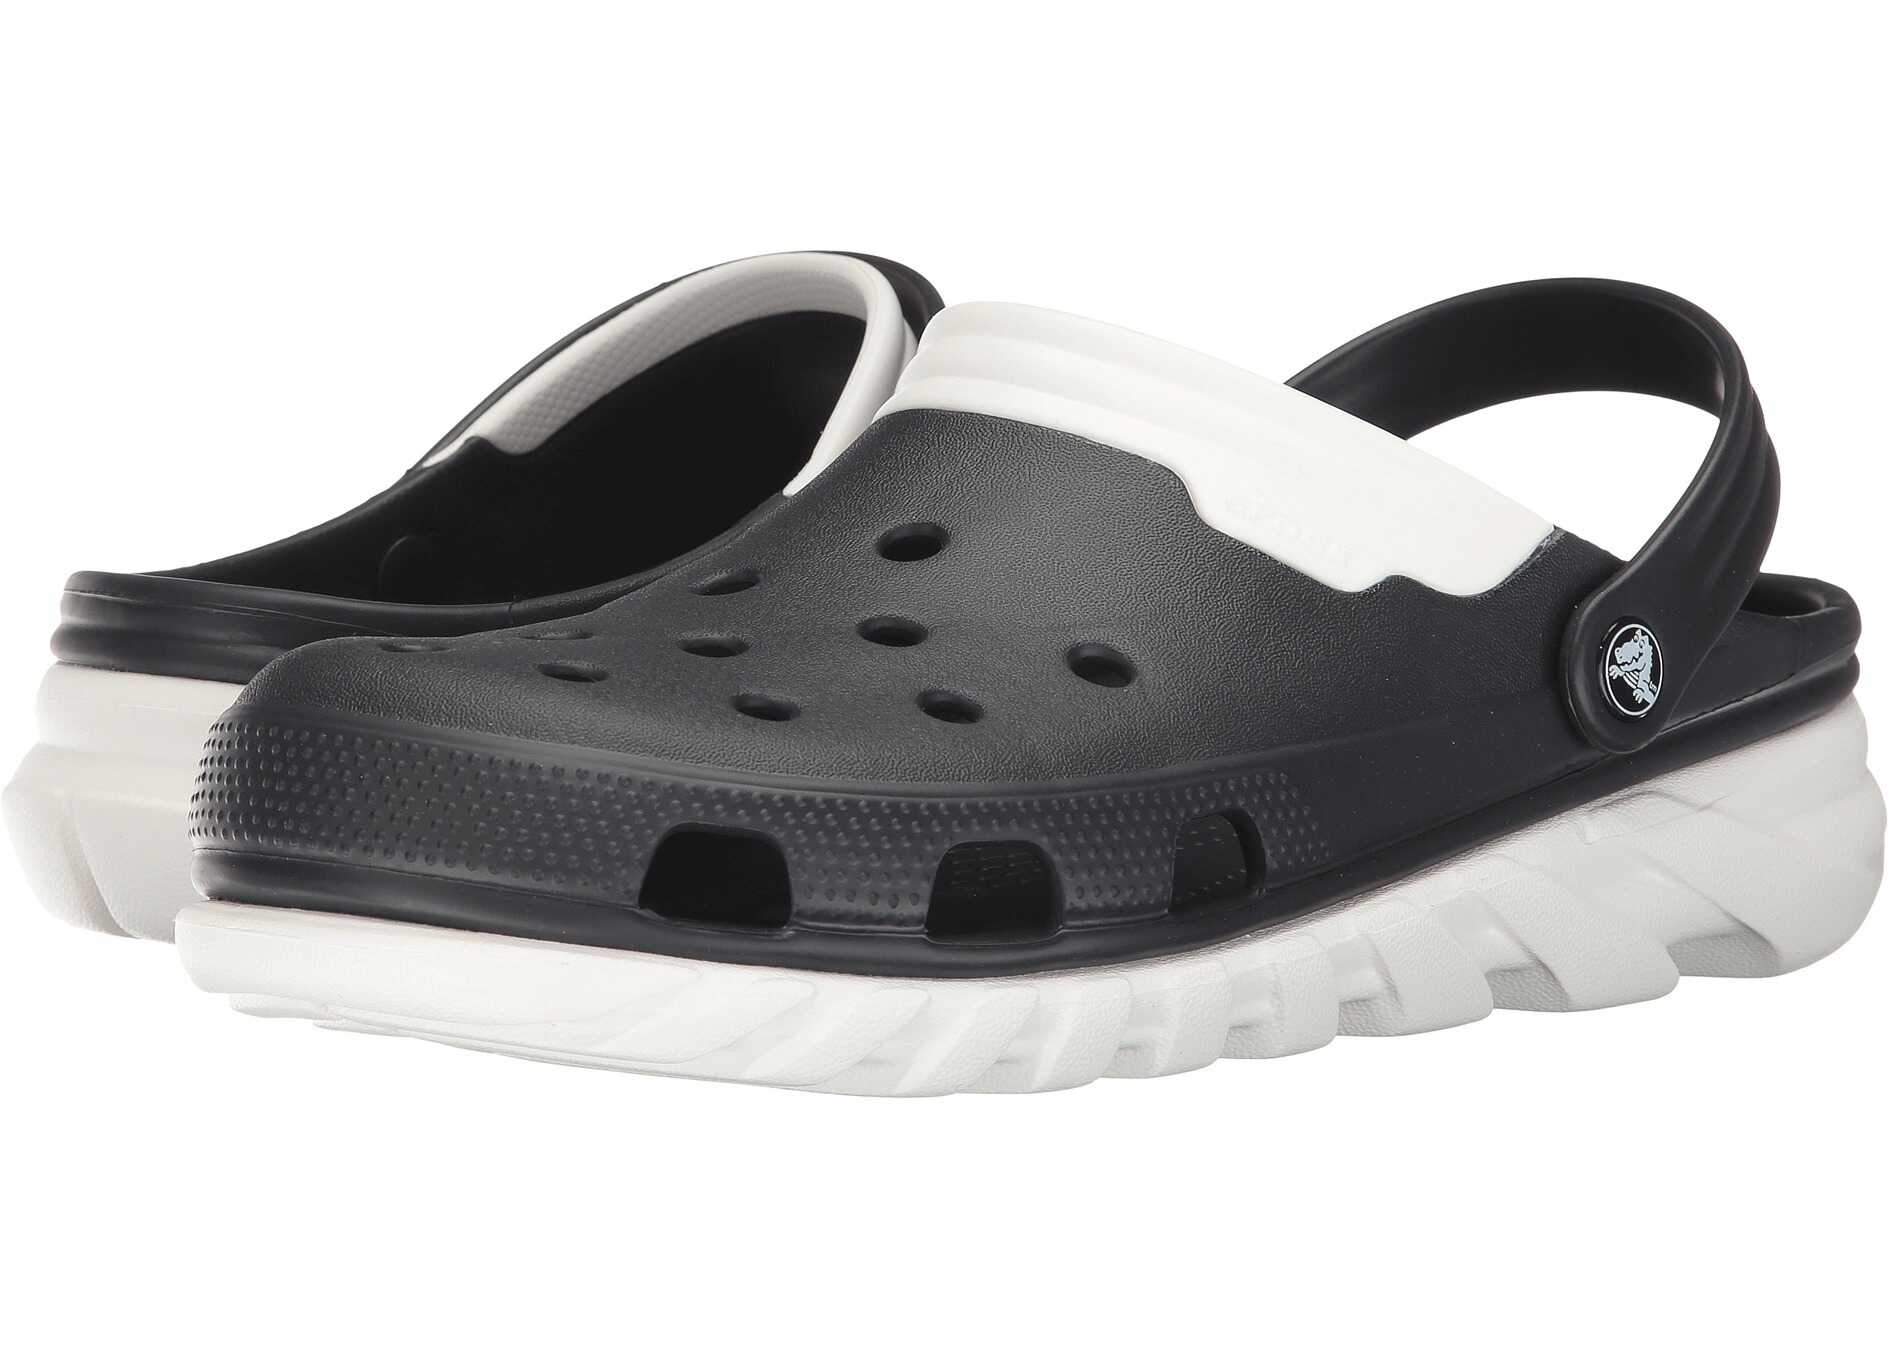 Crocs Duet Max Clog Black/White